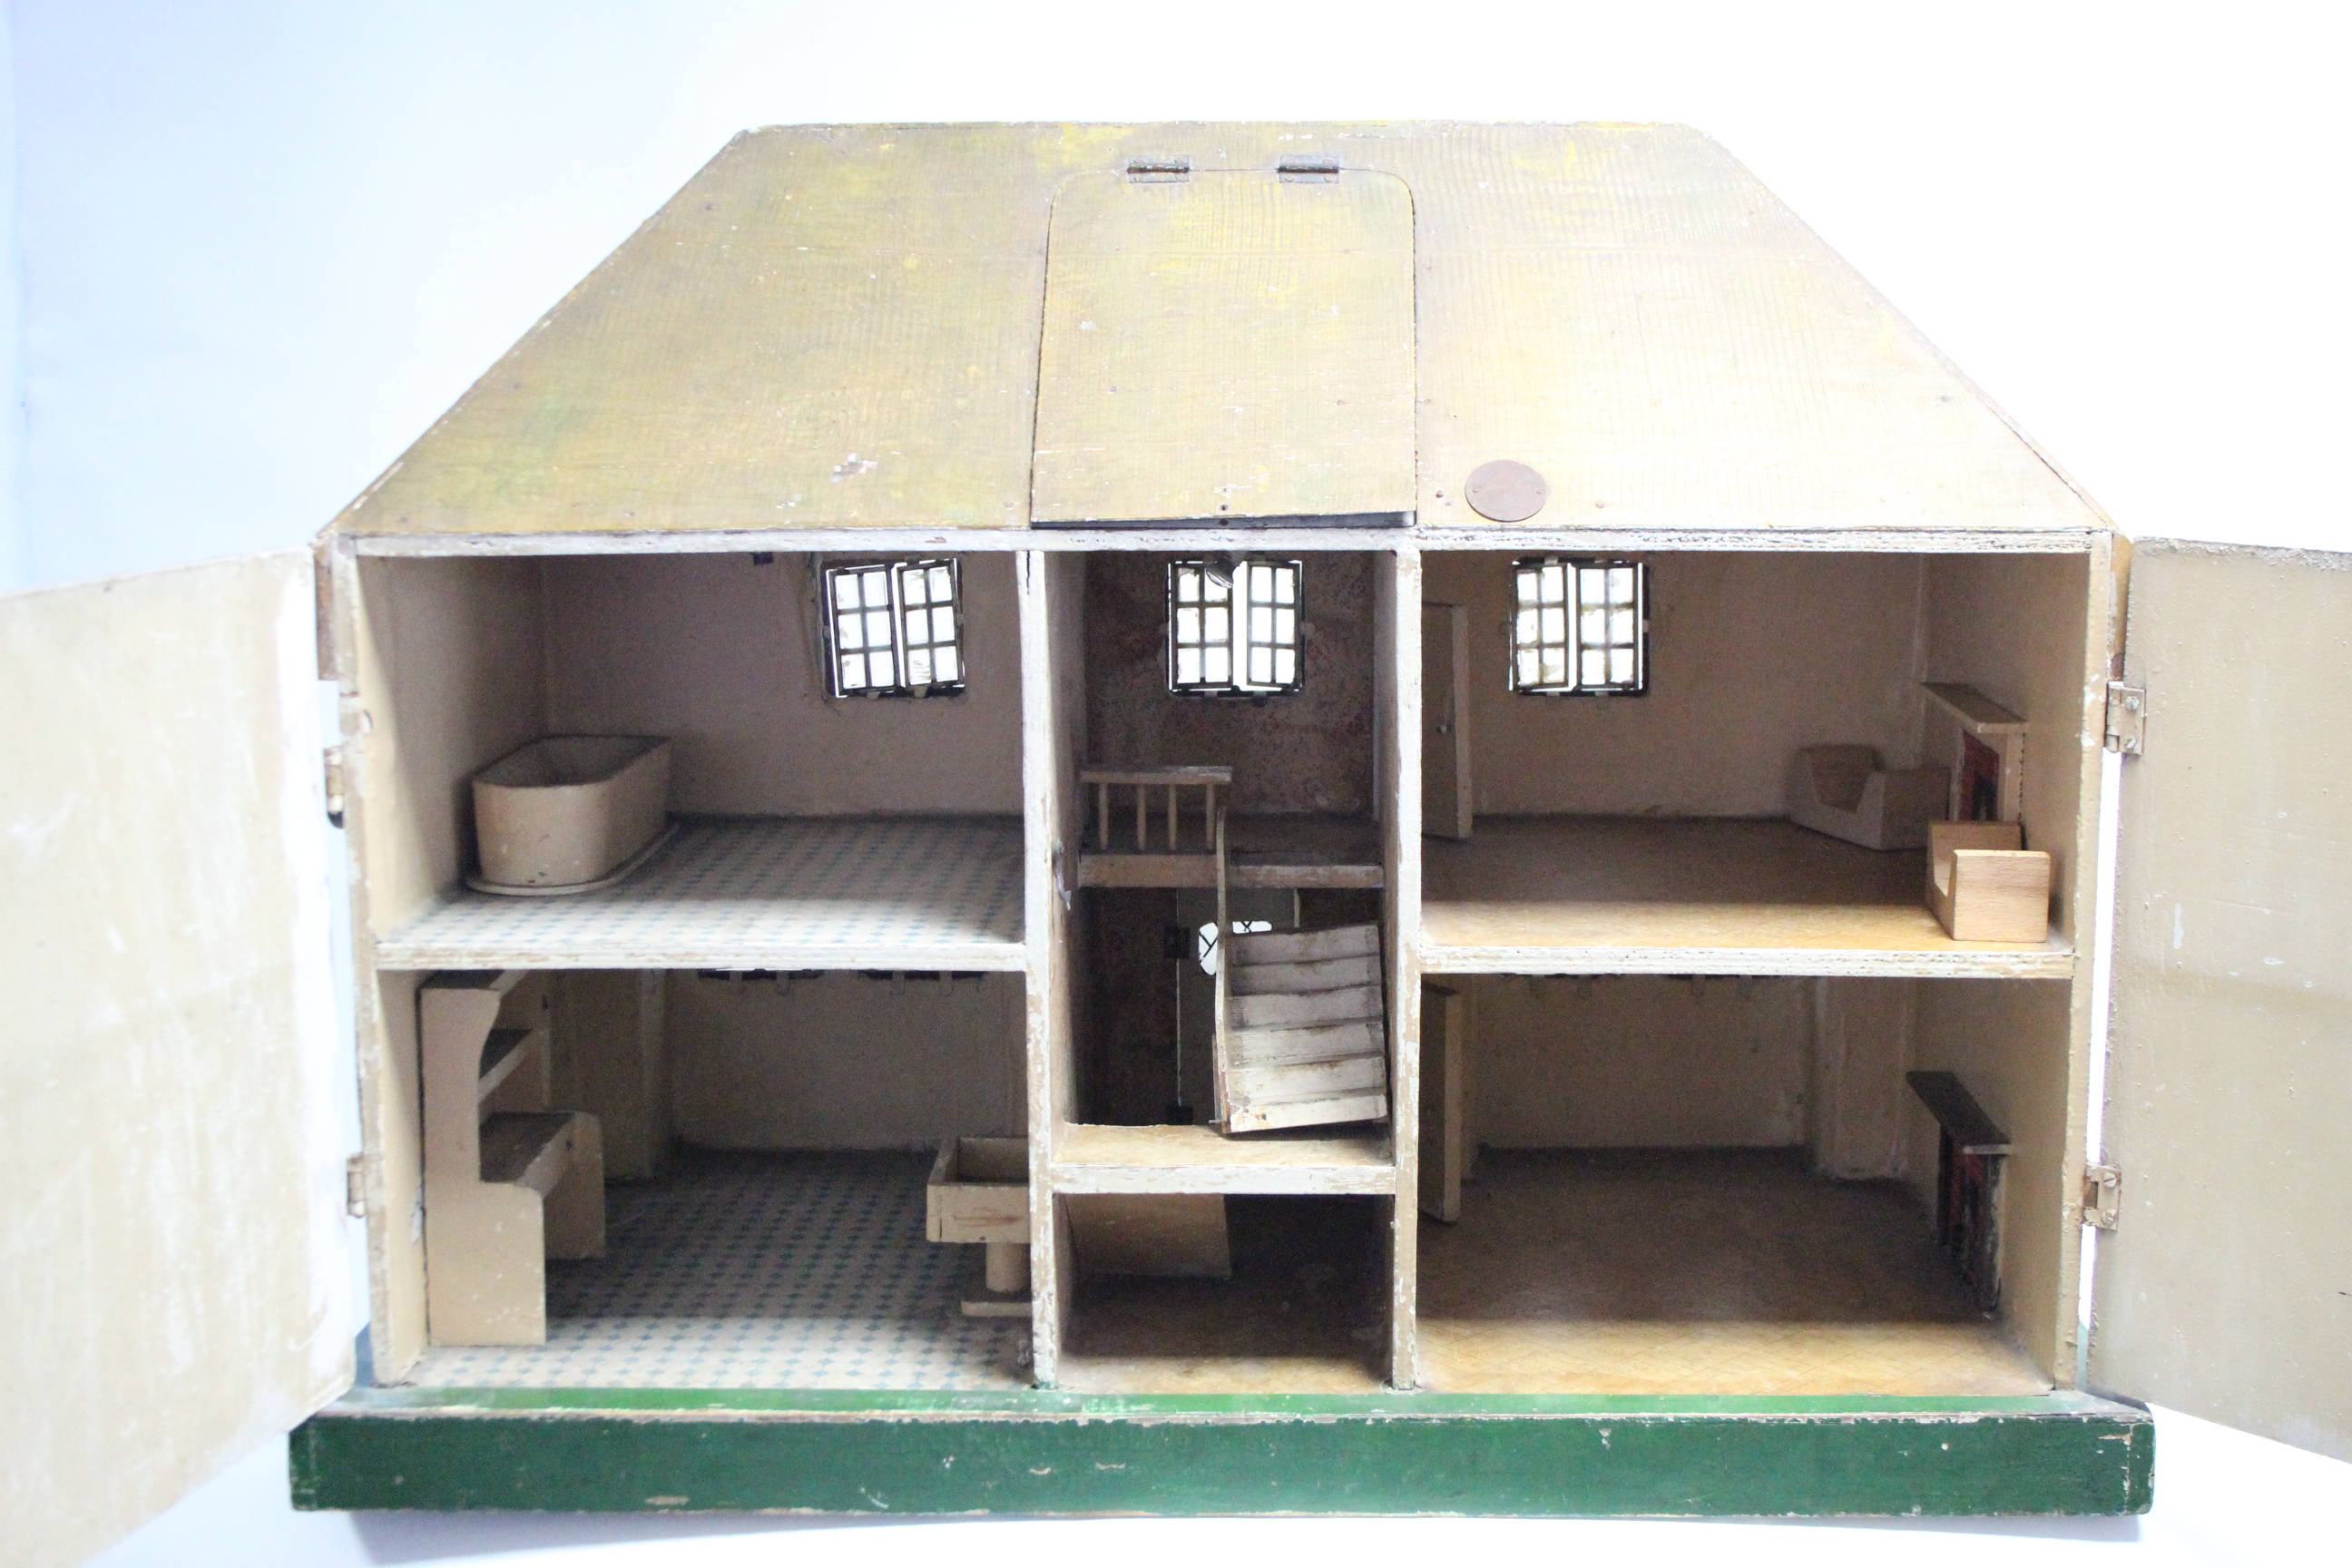 Lot 286 - An early-mid 20th century Tri-ang painted wooden cottage-style two-storey doll's house, with opening